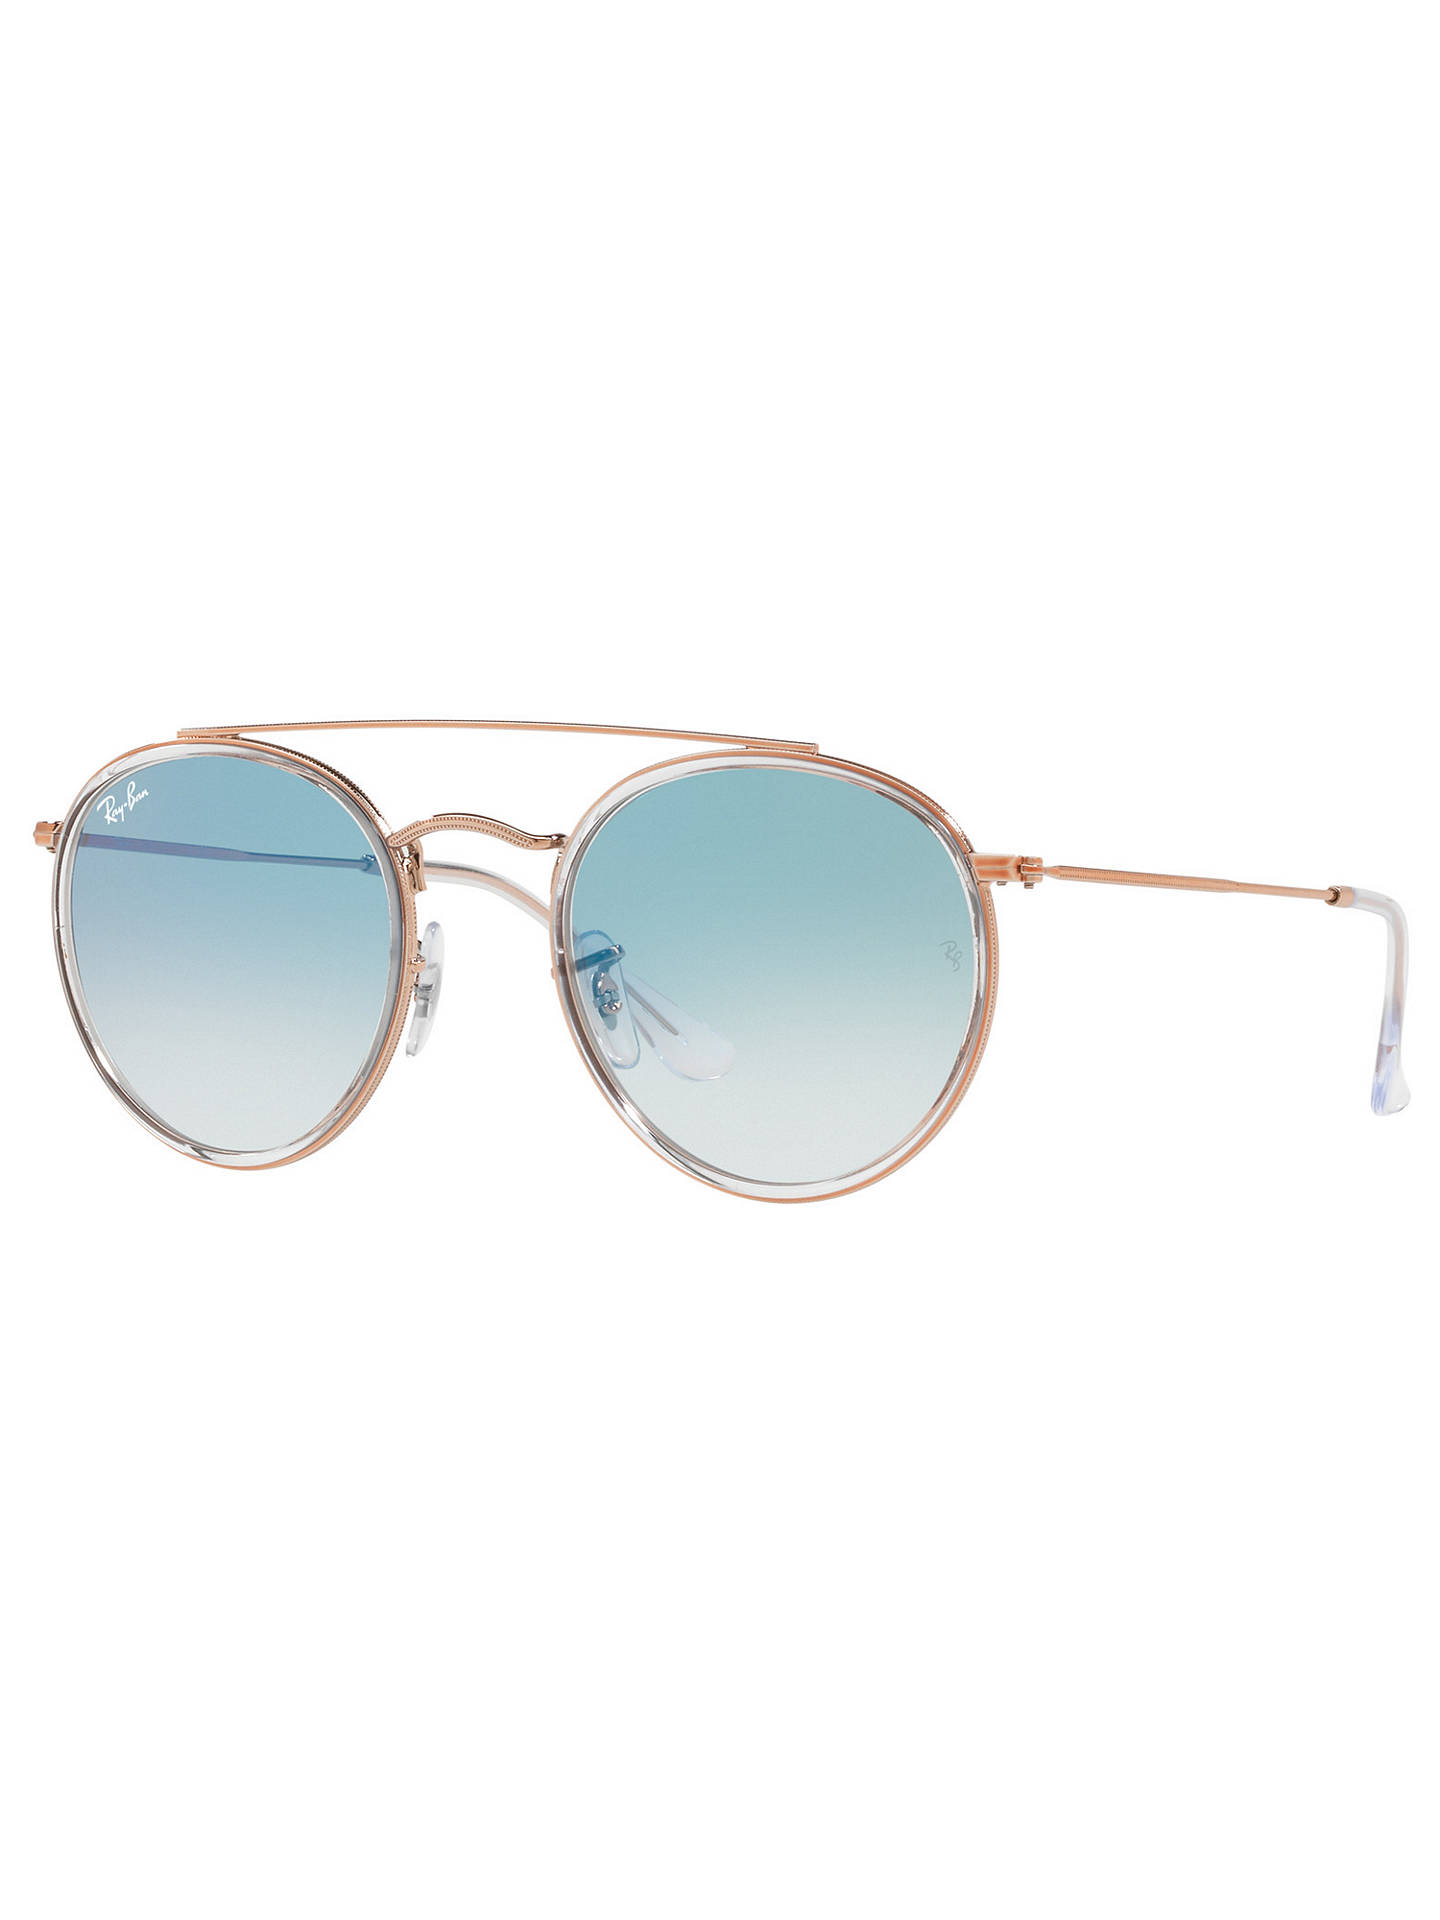 ray ban womens sunglasses rose gold